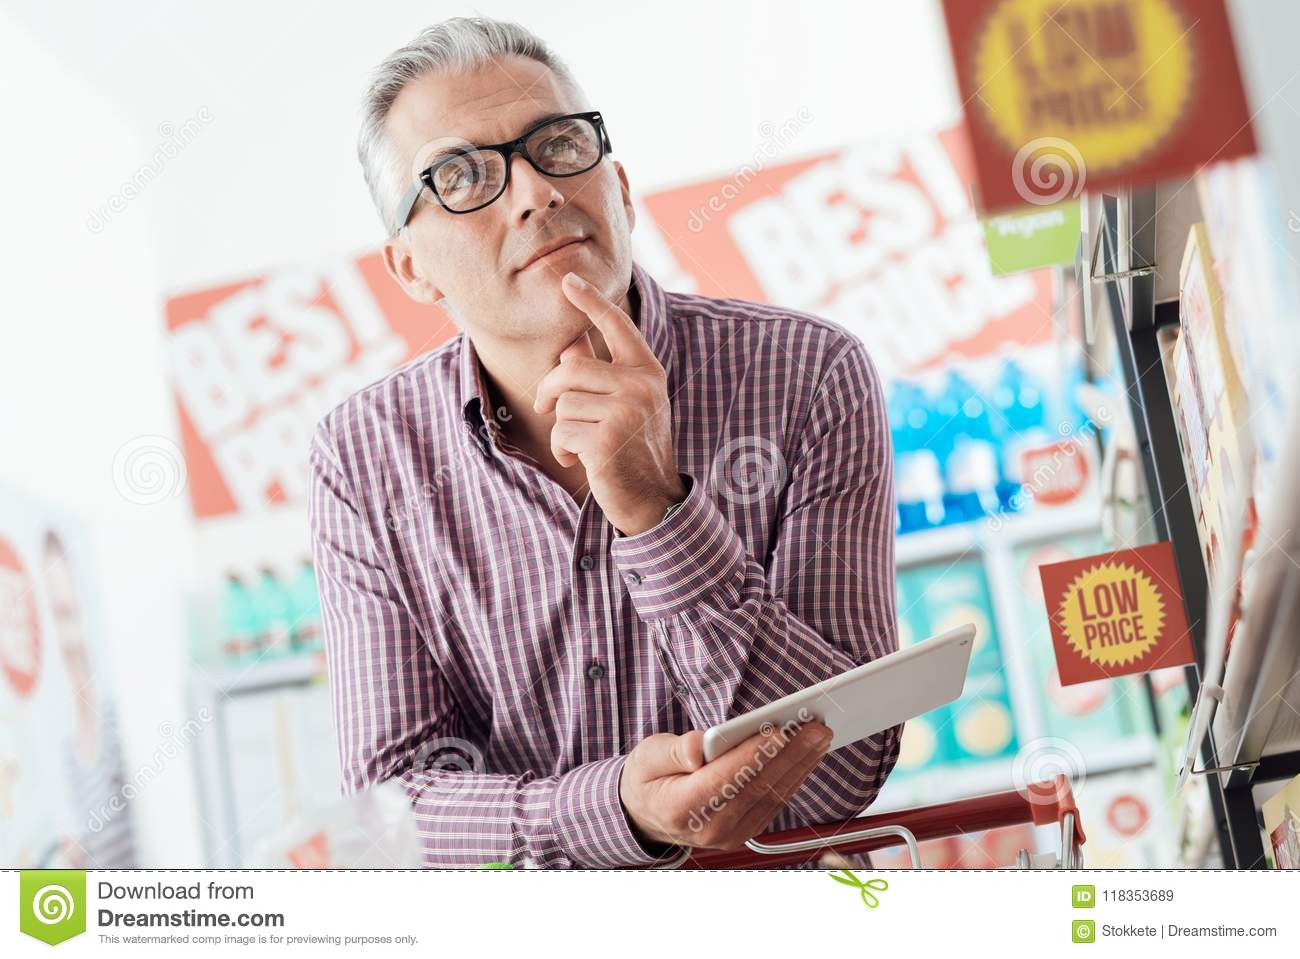 Man shopping at the store